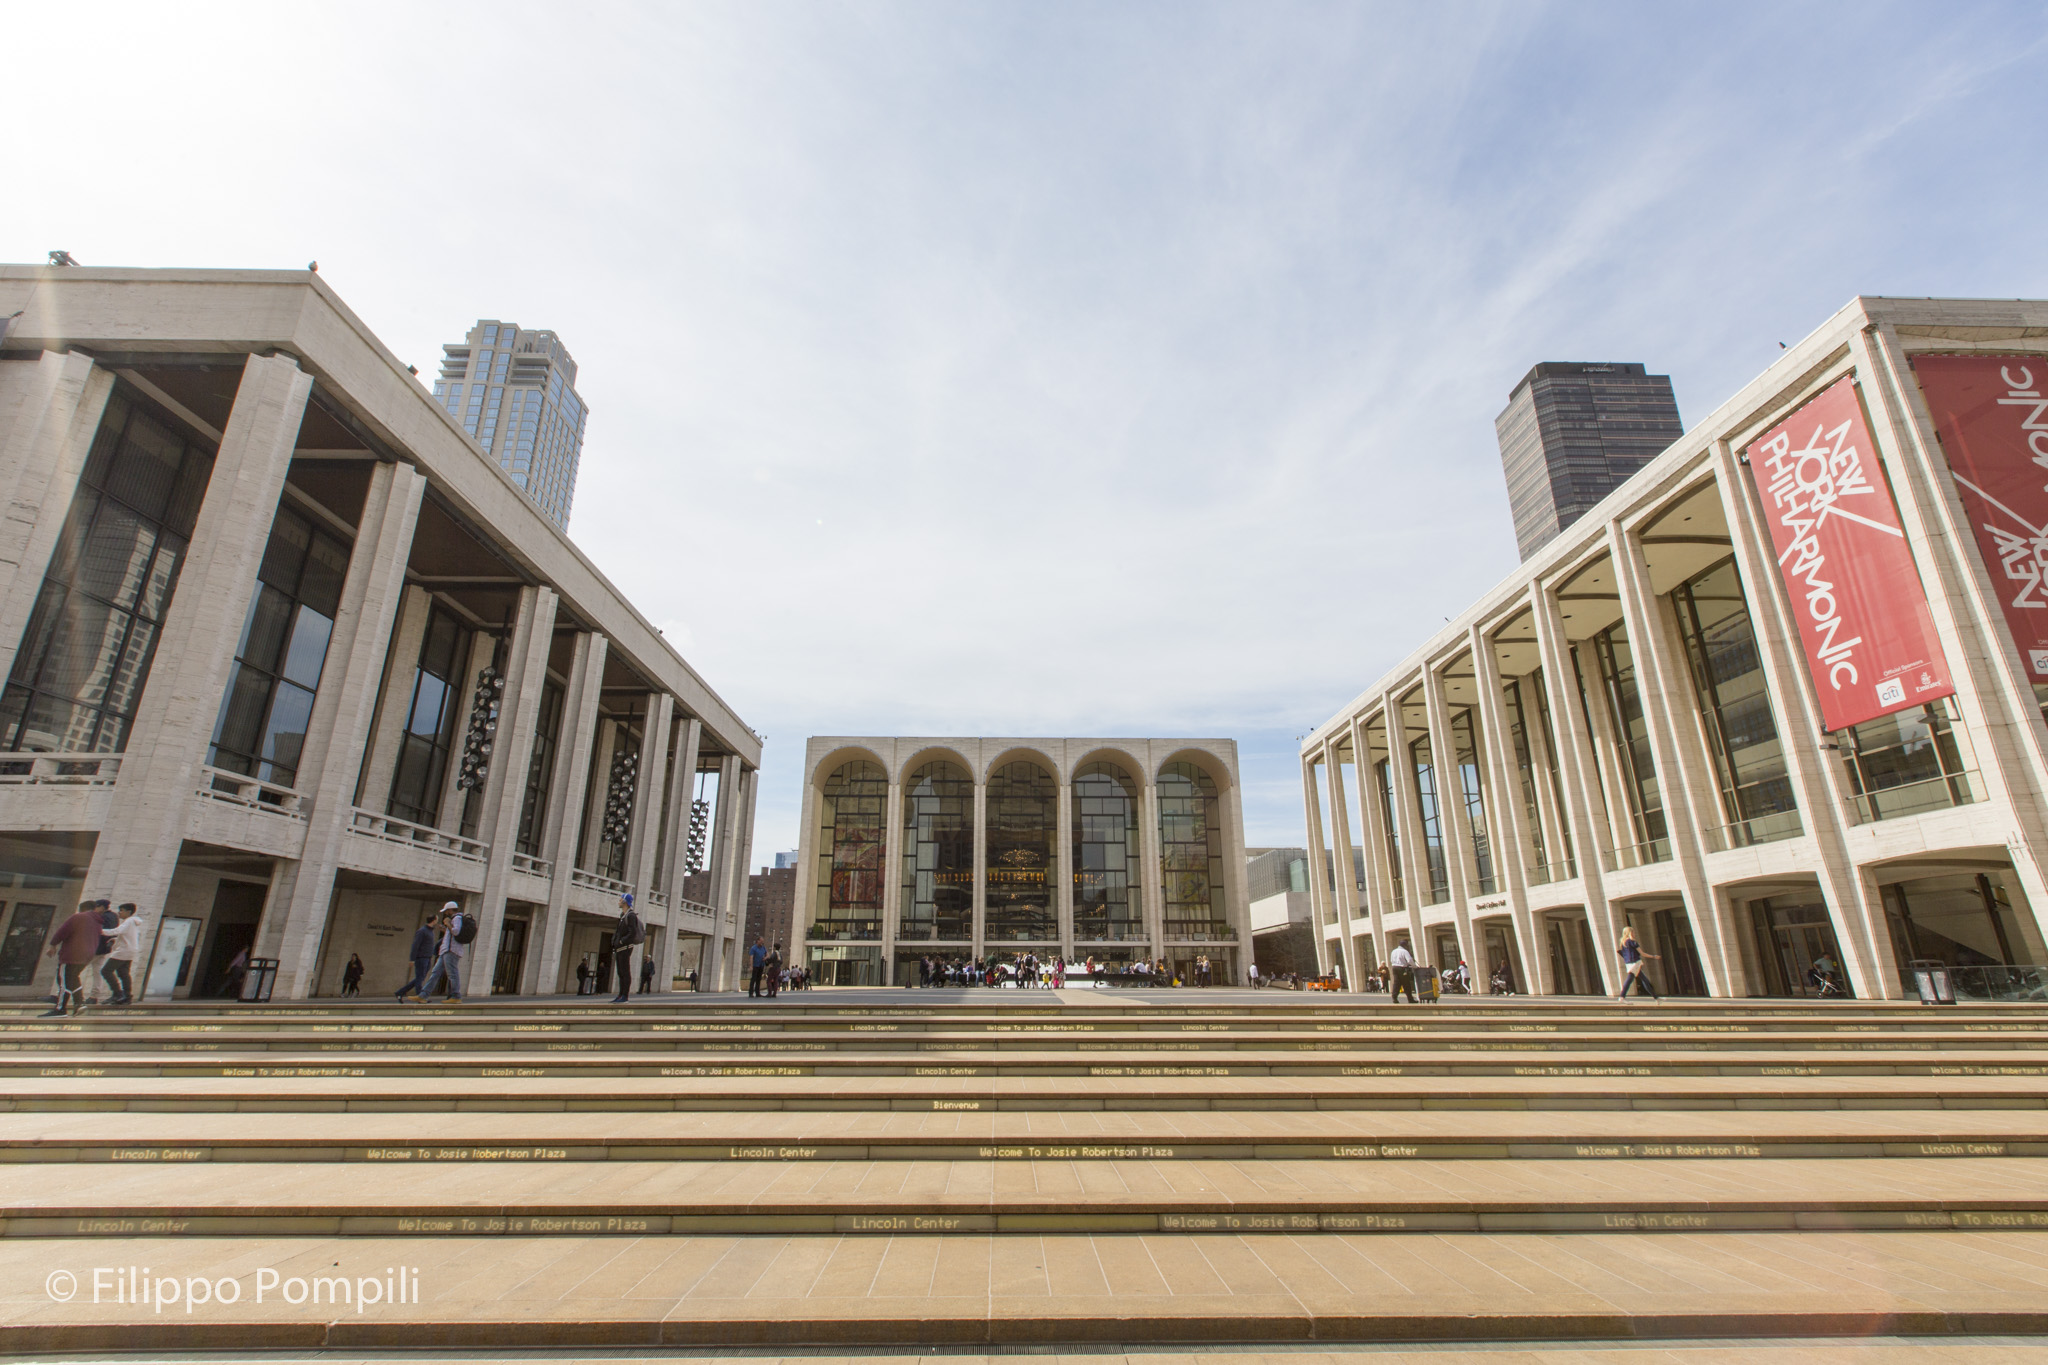 Lincoln Center for the Performing Arts - Foto Filippo Pompili